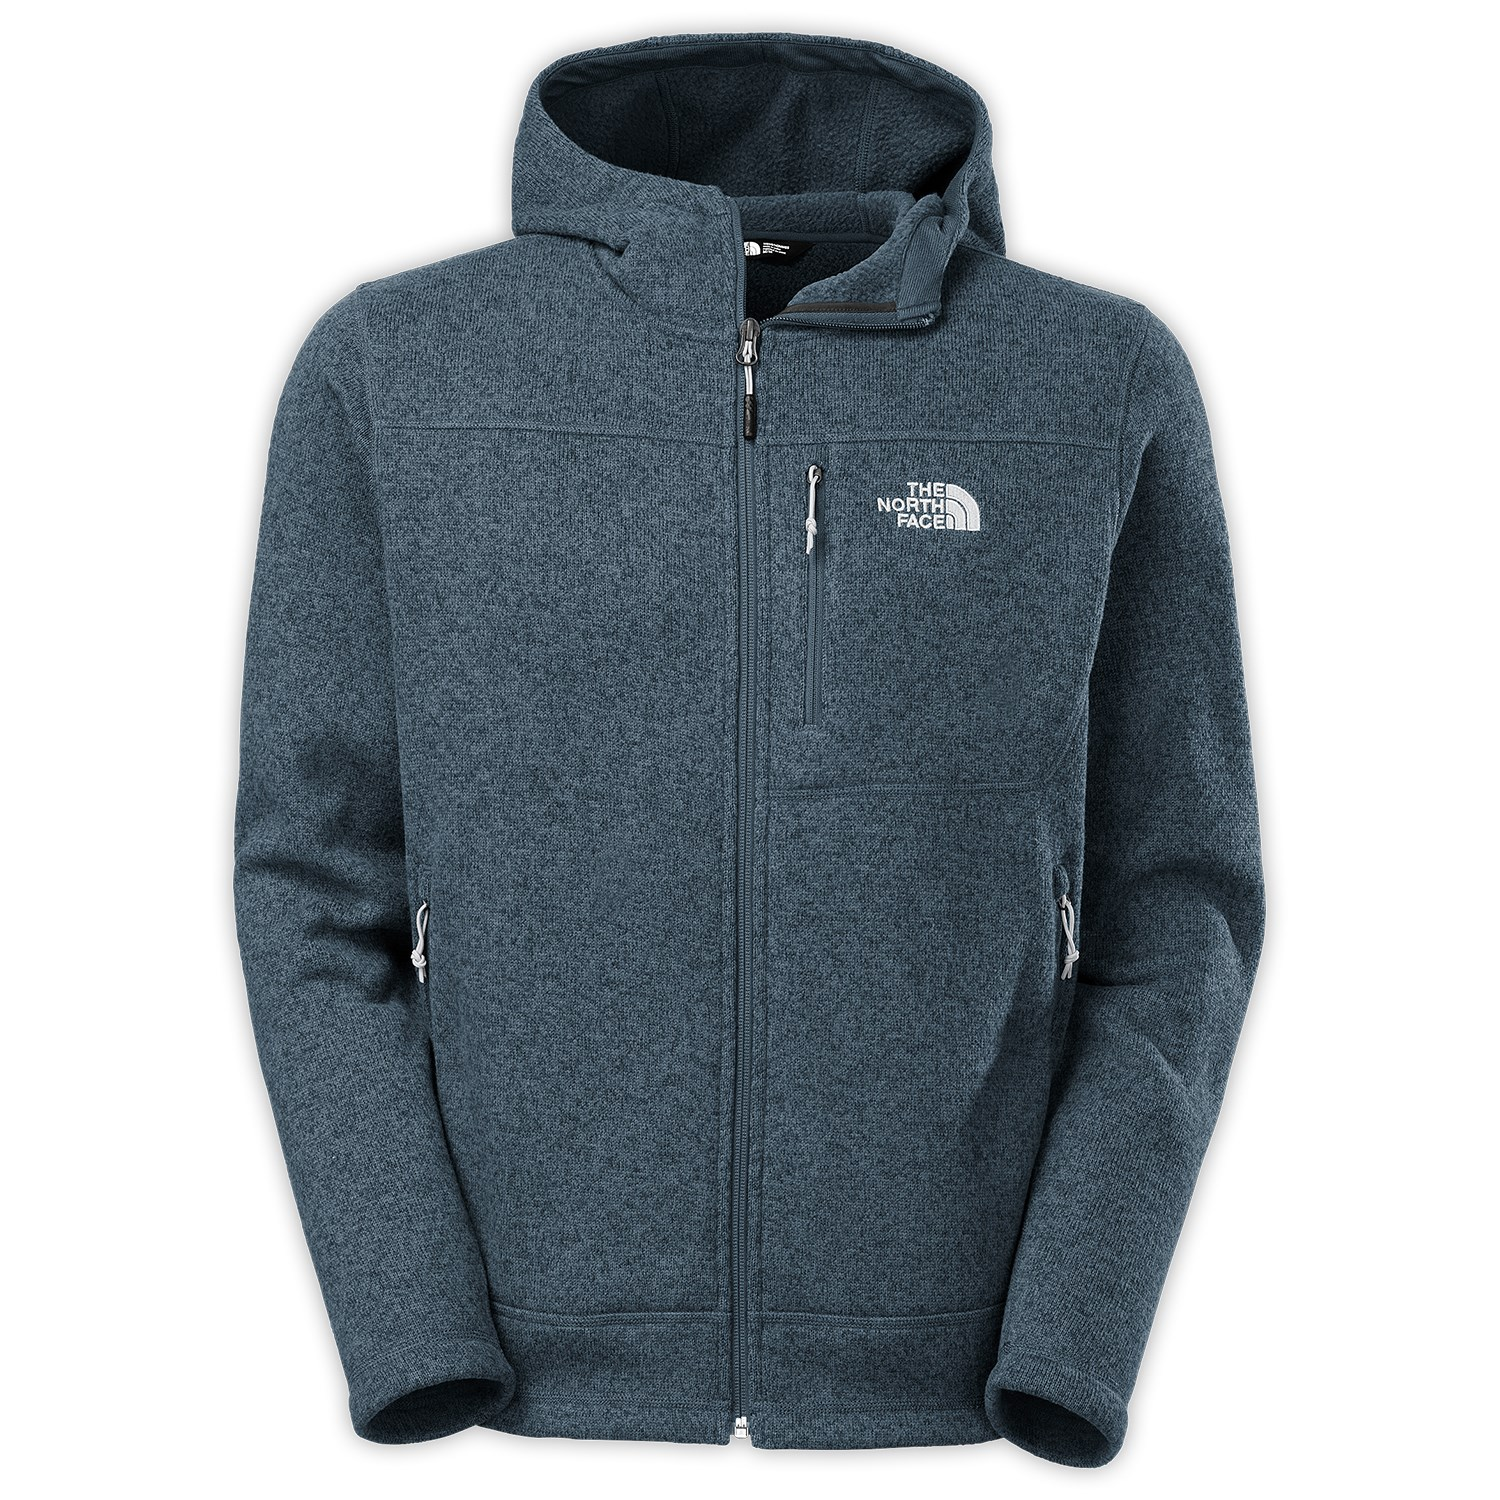 8d800874a The North Face Gordon Lyons Full Zip Hoodie